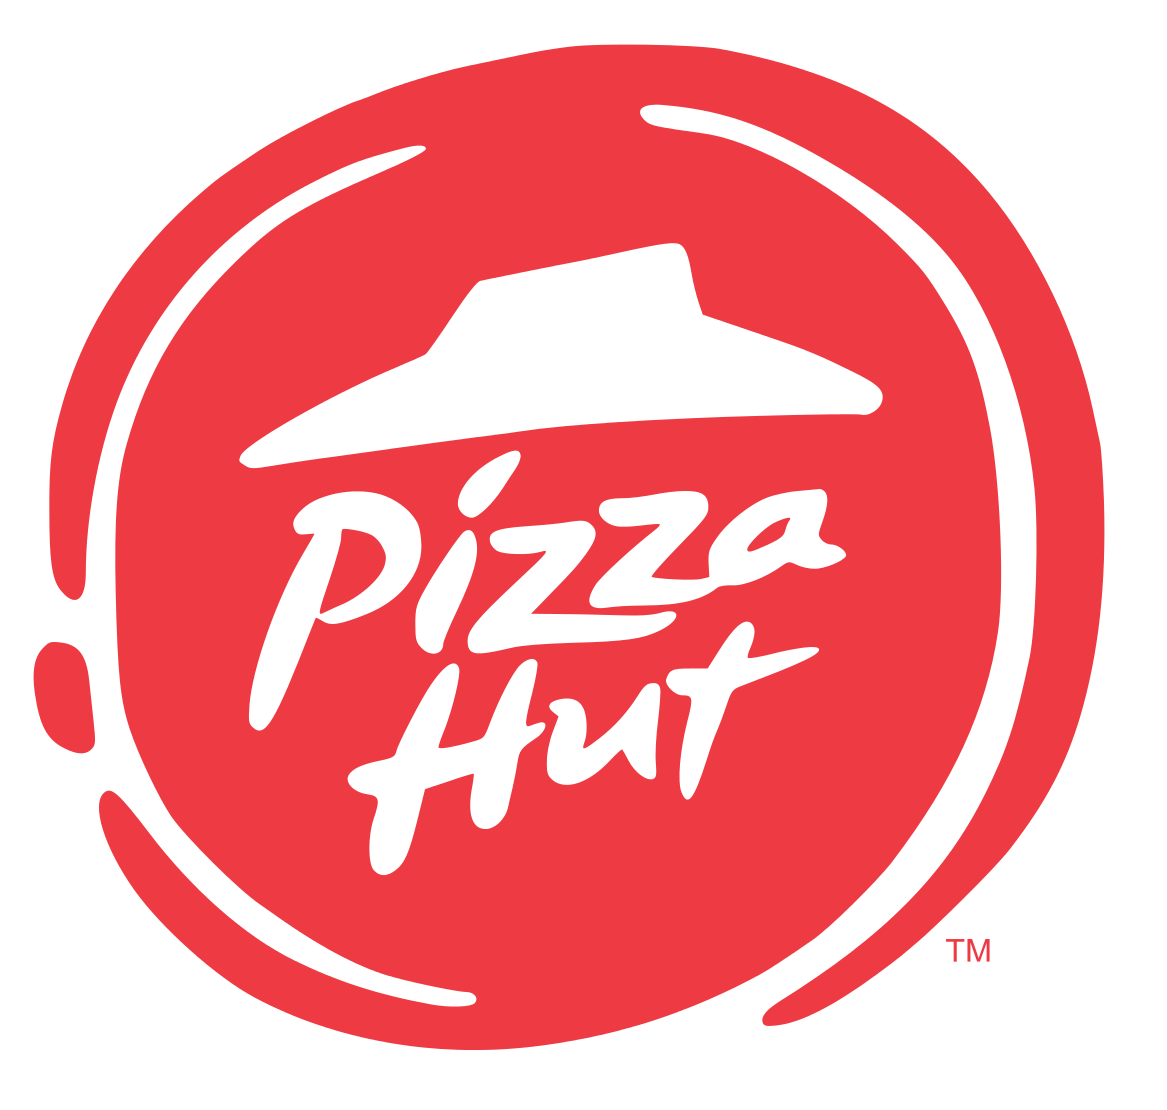 Pizza hut - Kids (12 & under) eat free with each paying adult from 5:30-7:30pm.*Tuesday and Thursday2413 Memorial Ave, Lynchburg, VA 24501(434) 845-1433